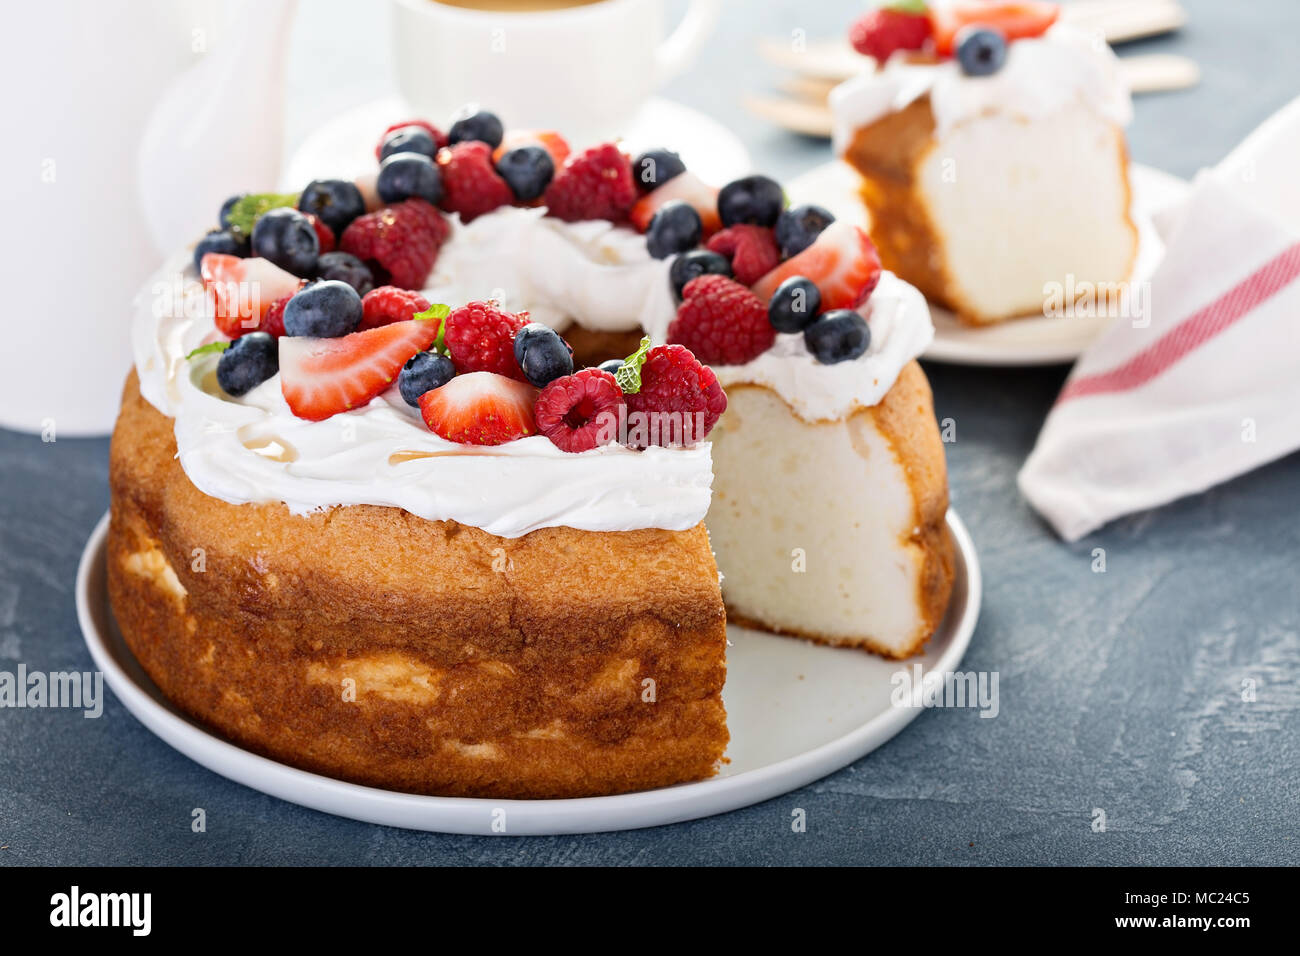 Angel food cake with cream and berries - Stock Image